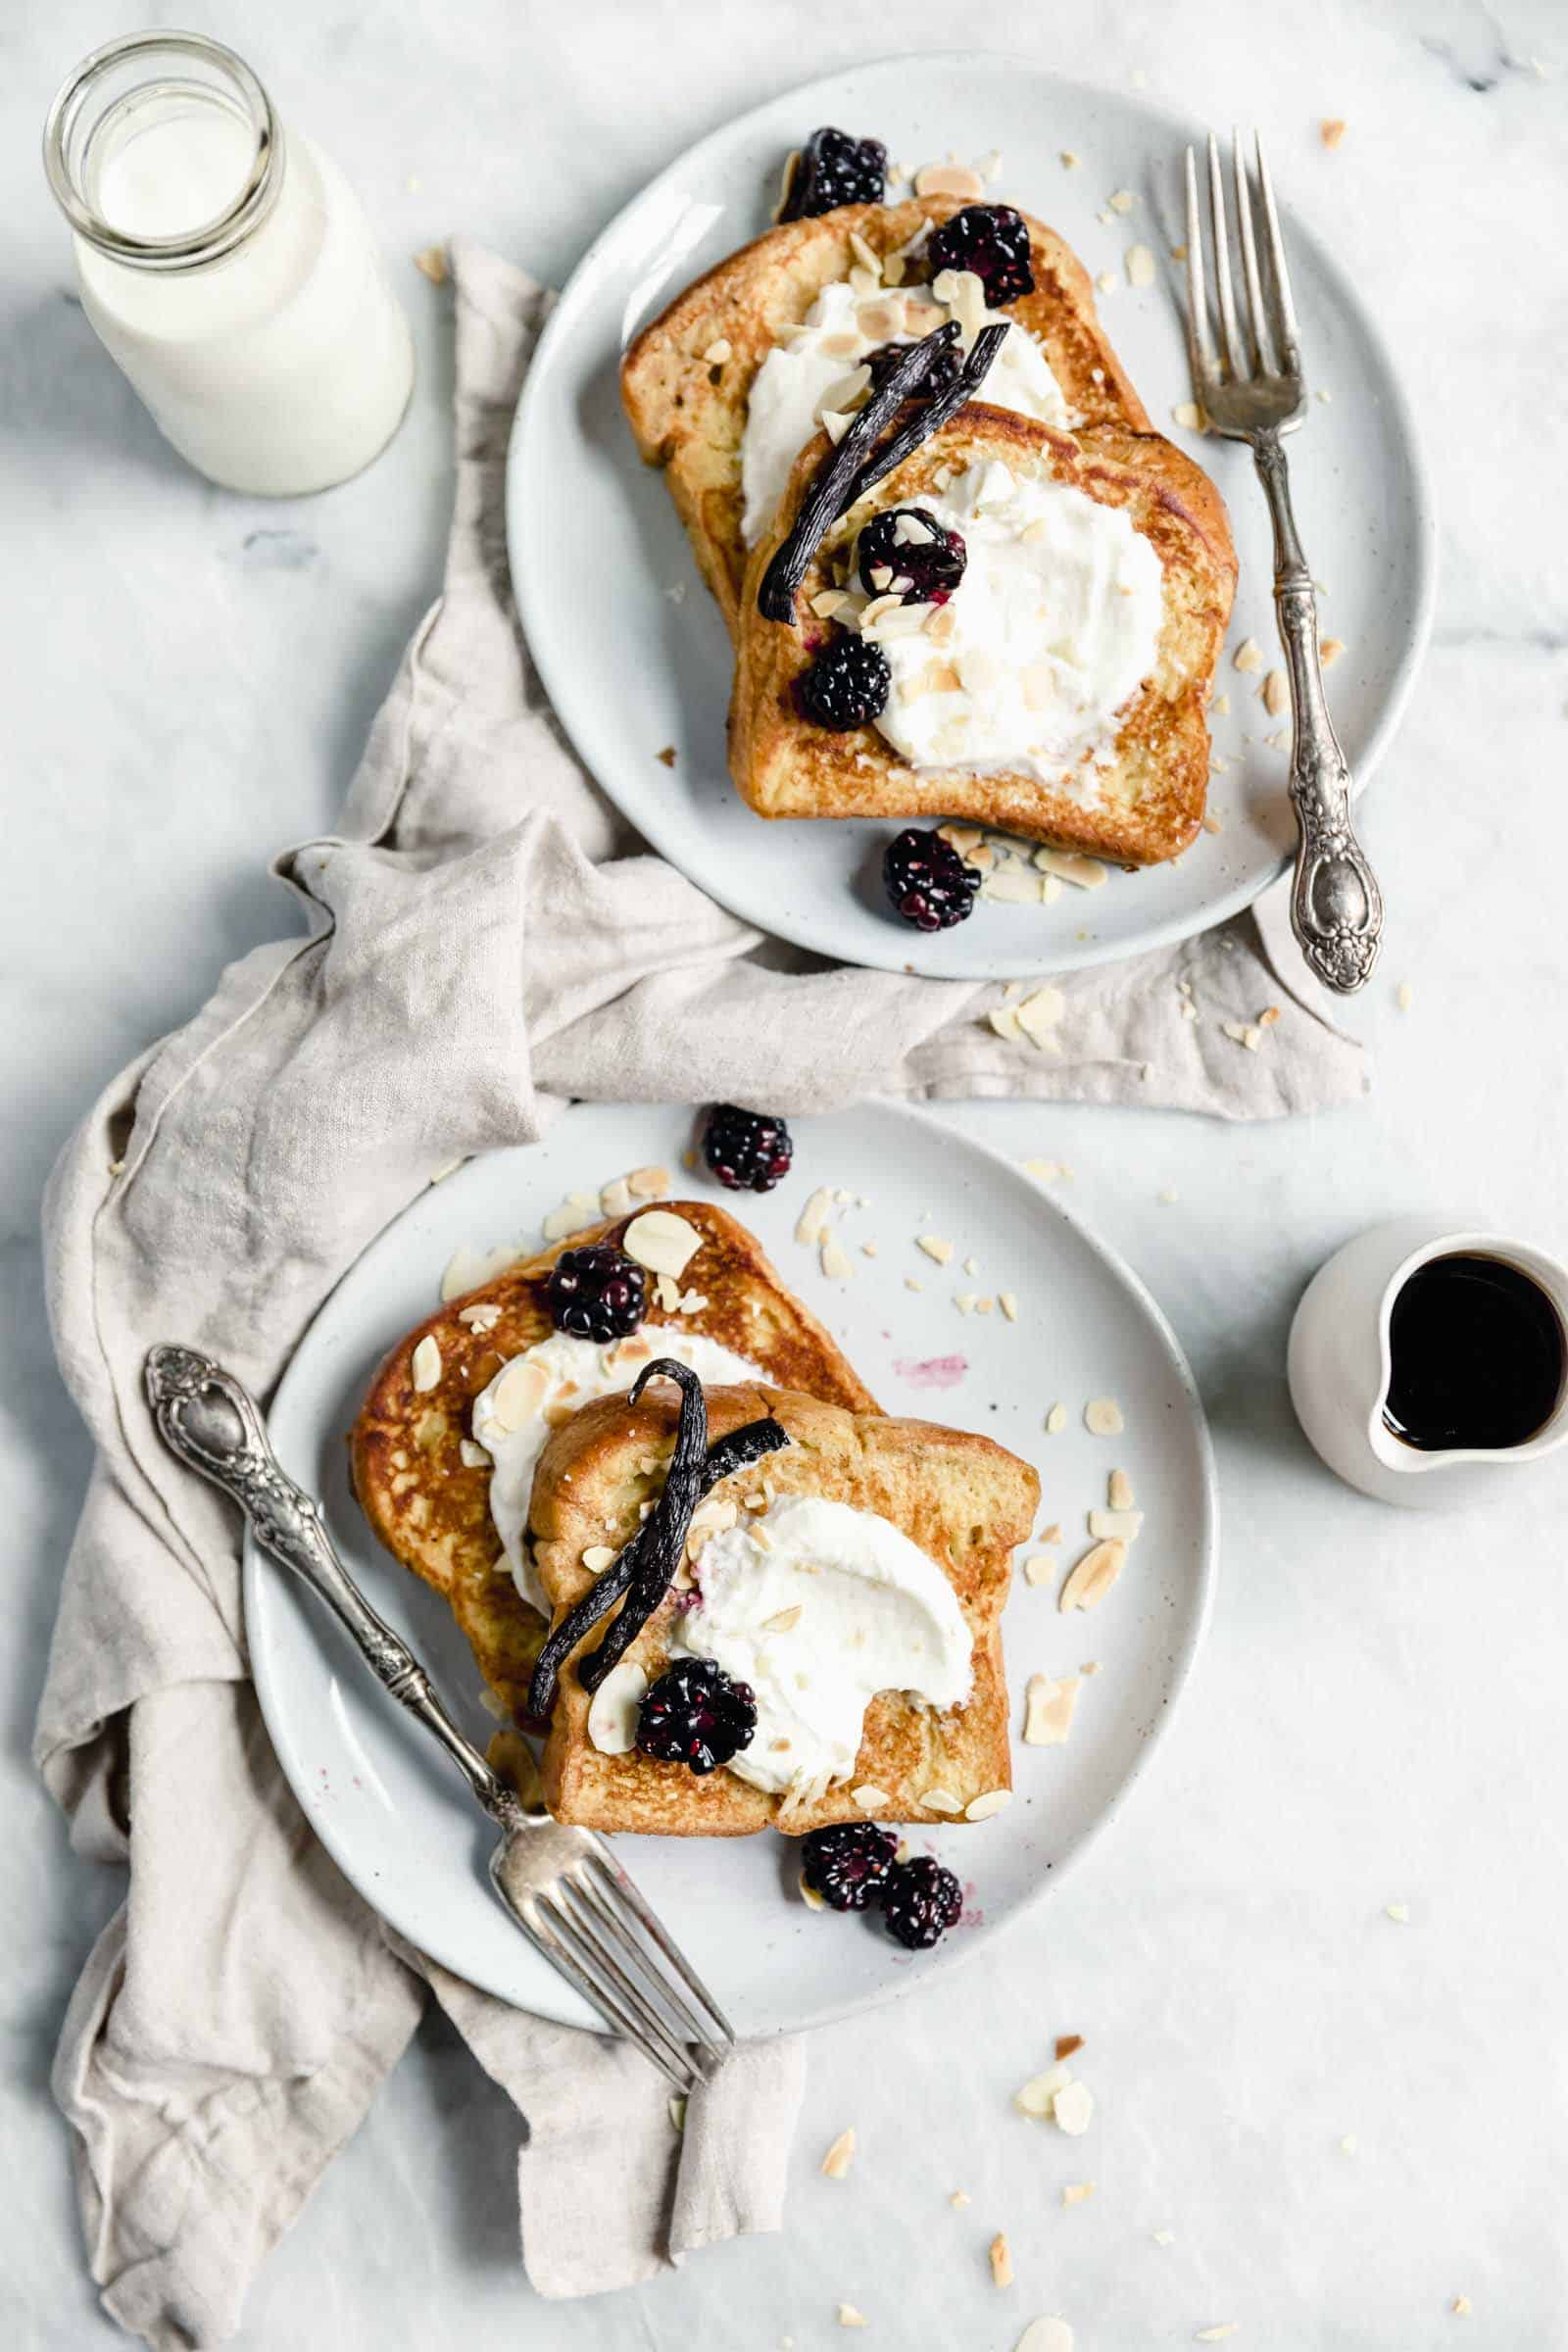 overhead shot of two plates of french toast with whipped cream and berries